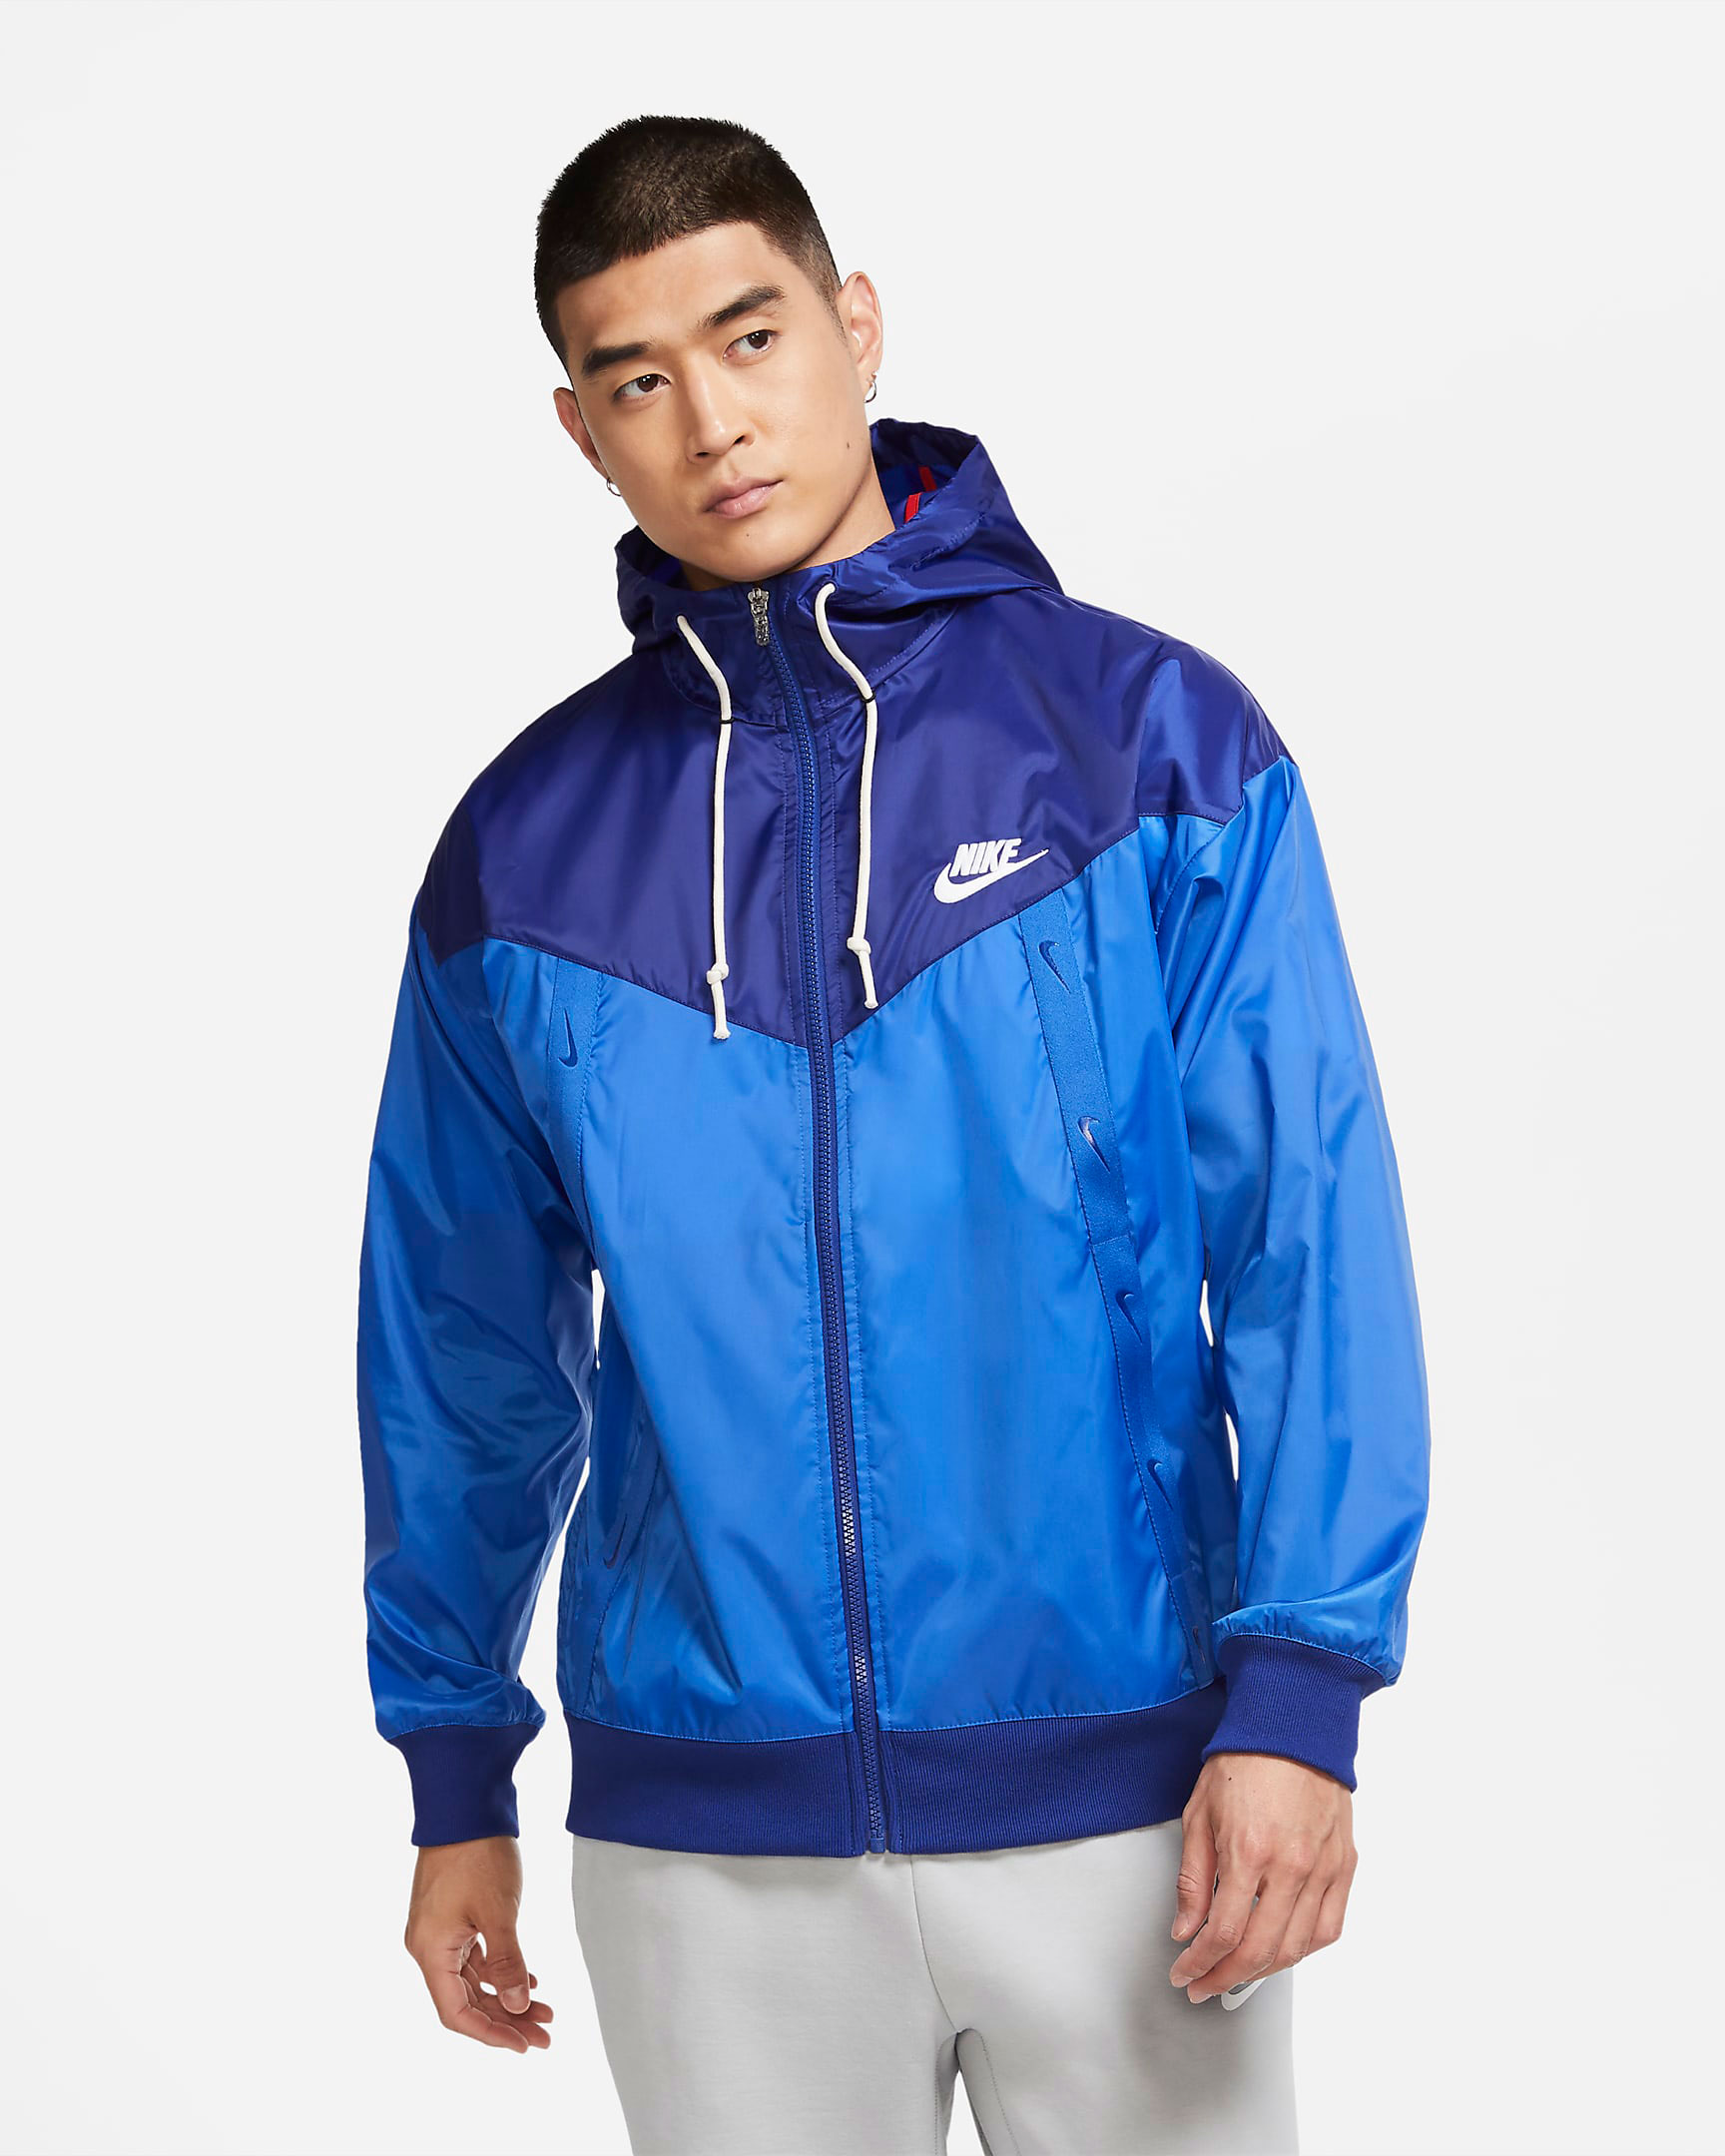 air-jordan-14-hyper-royal-nike-jacket-match-1